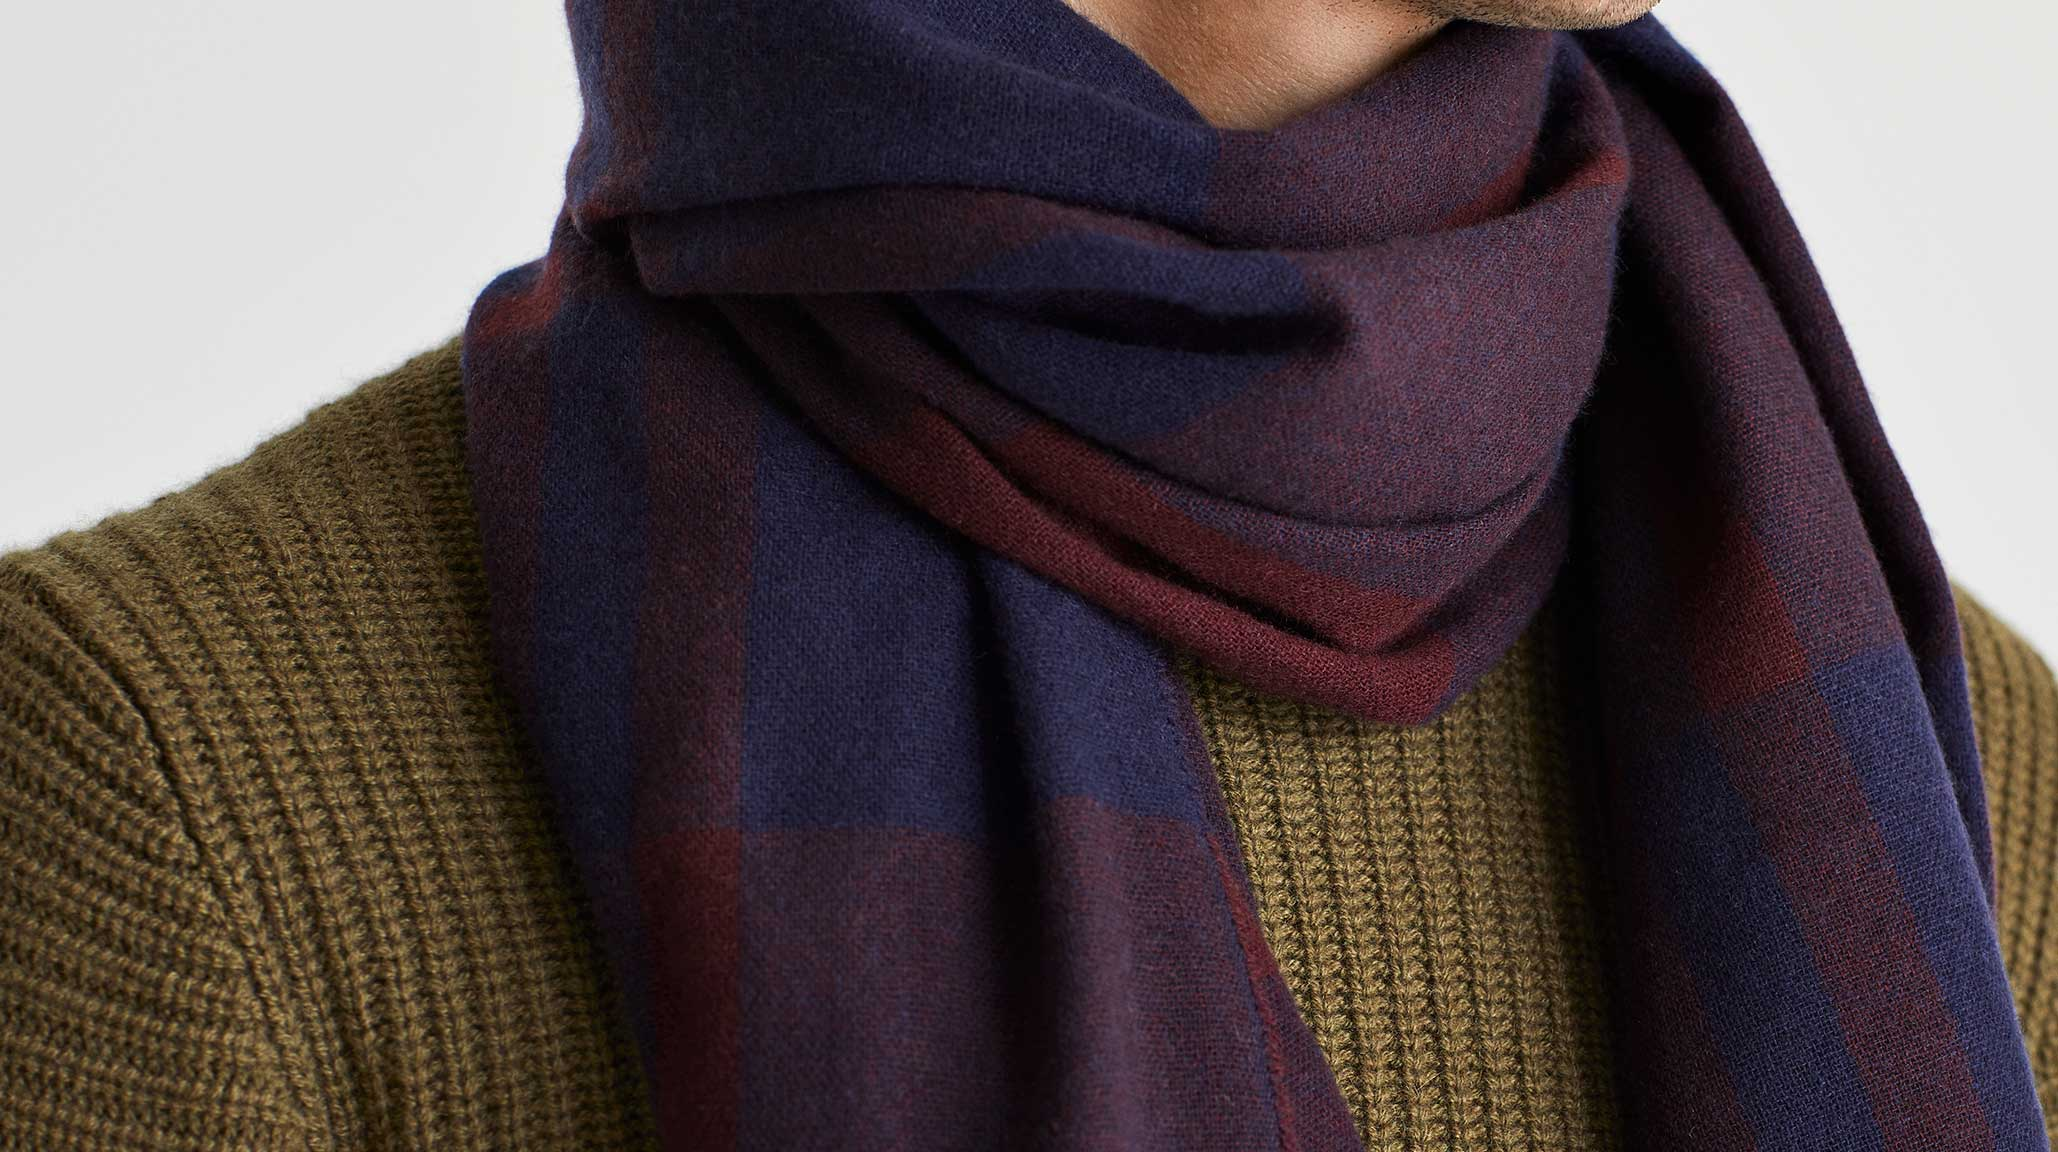 Man wearing green ribbed cashmere jumper and purple cashmere scarf